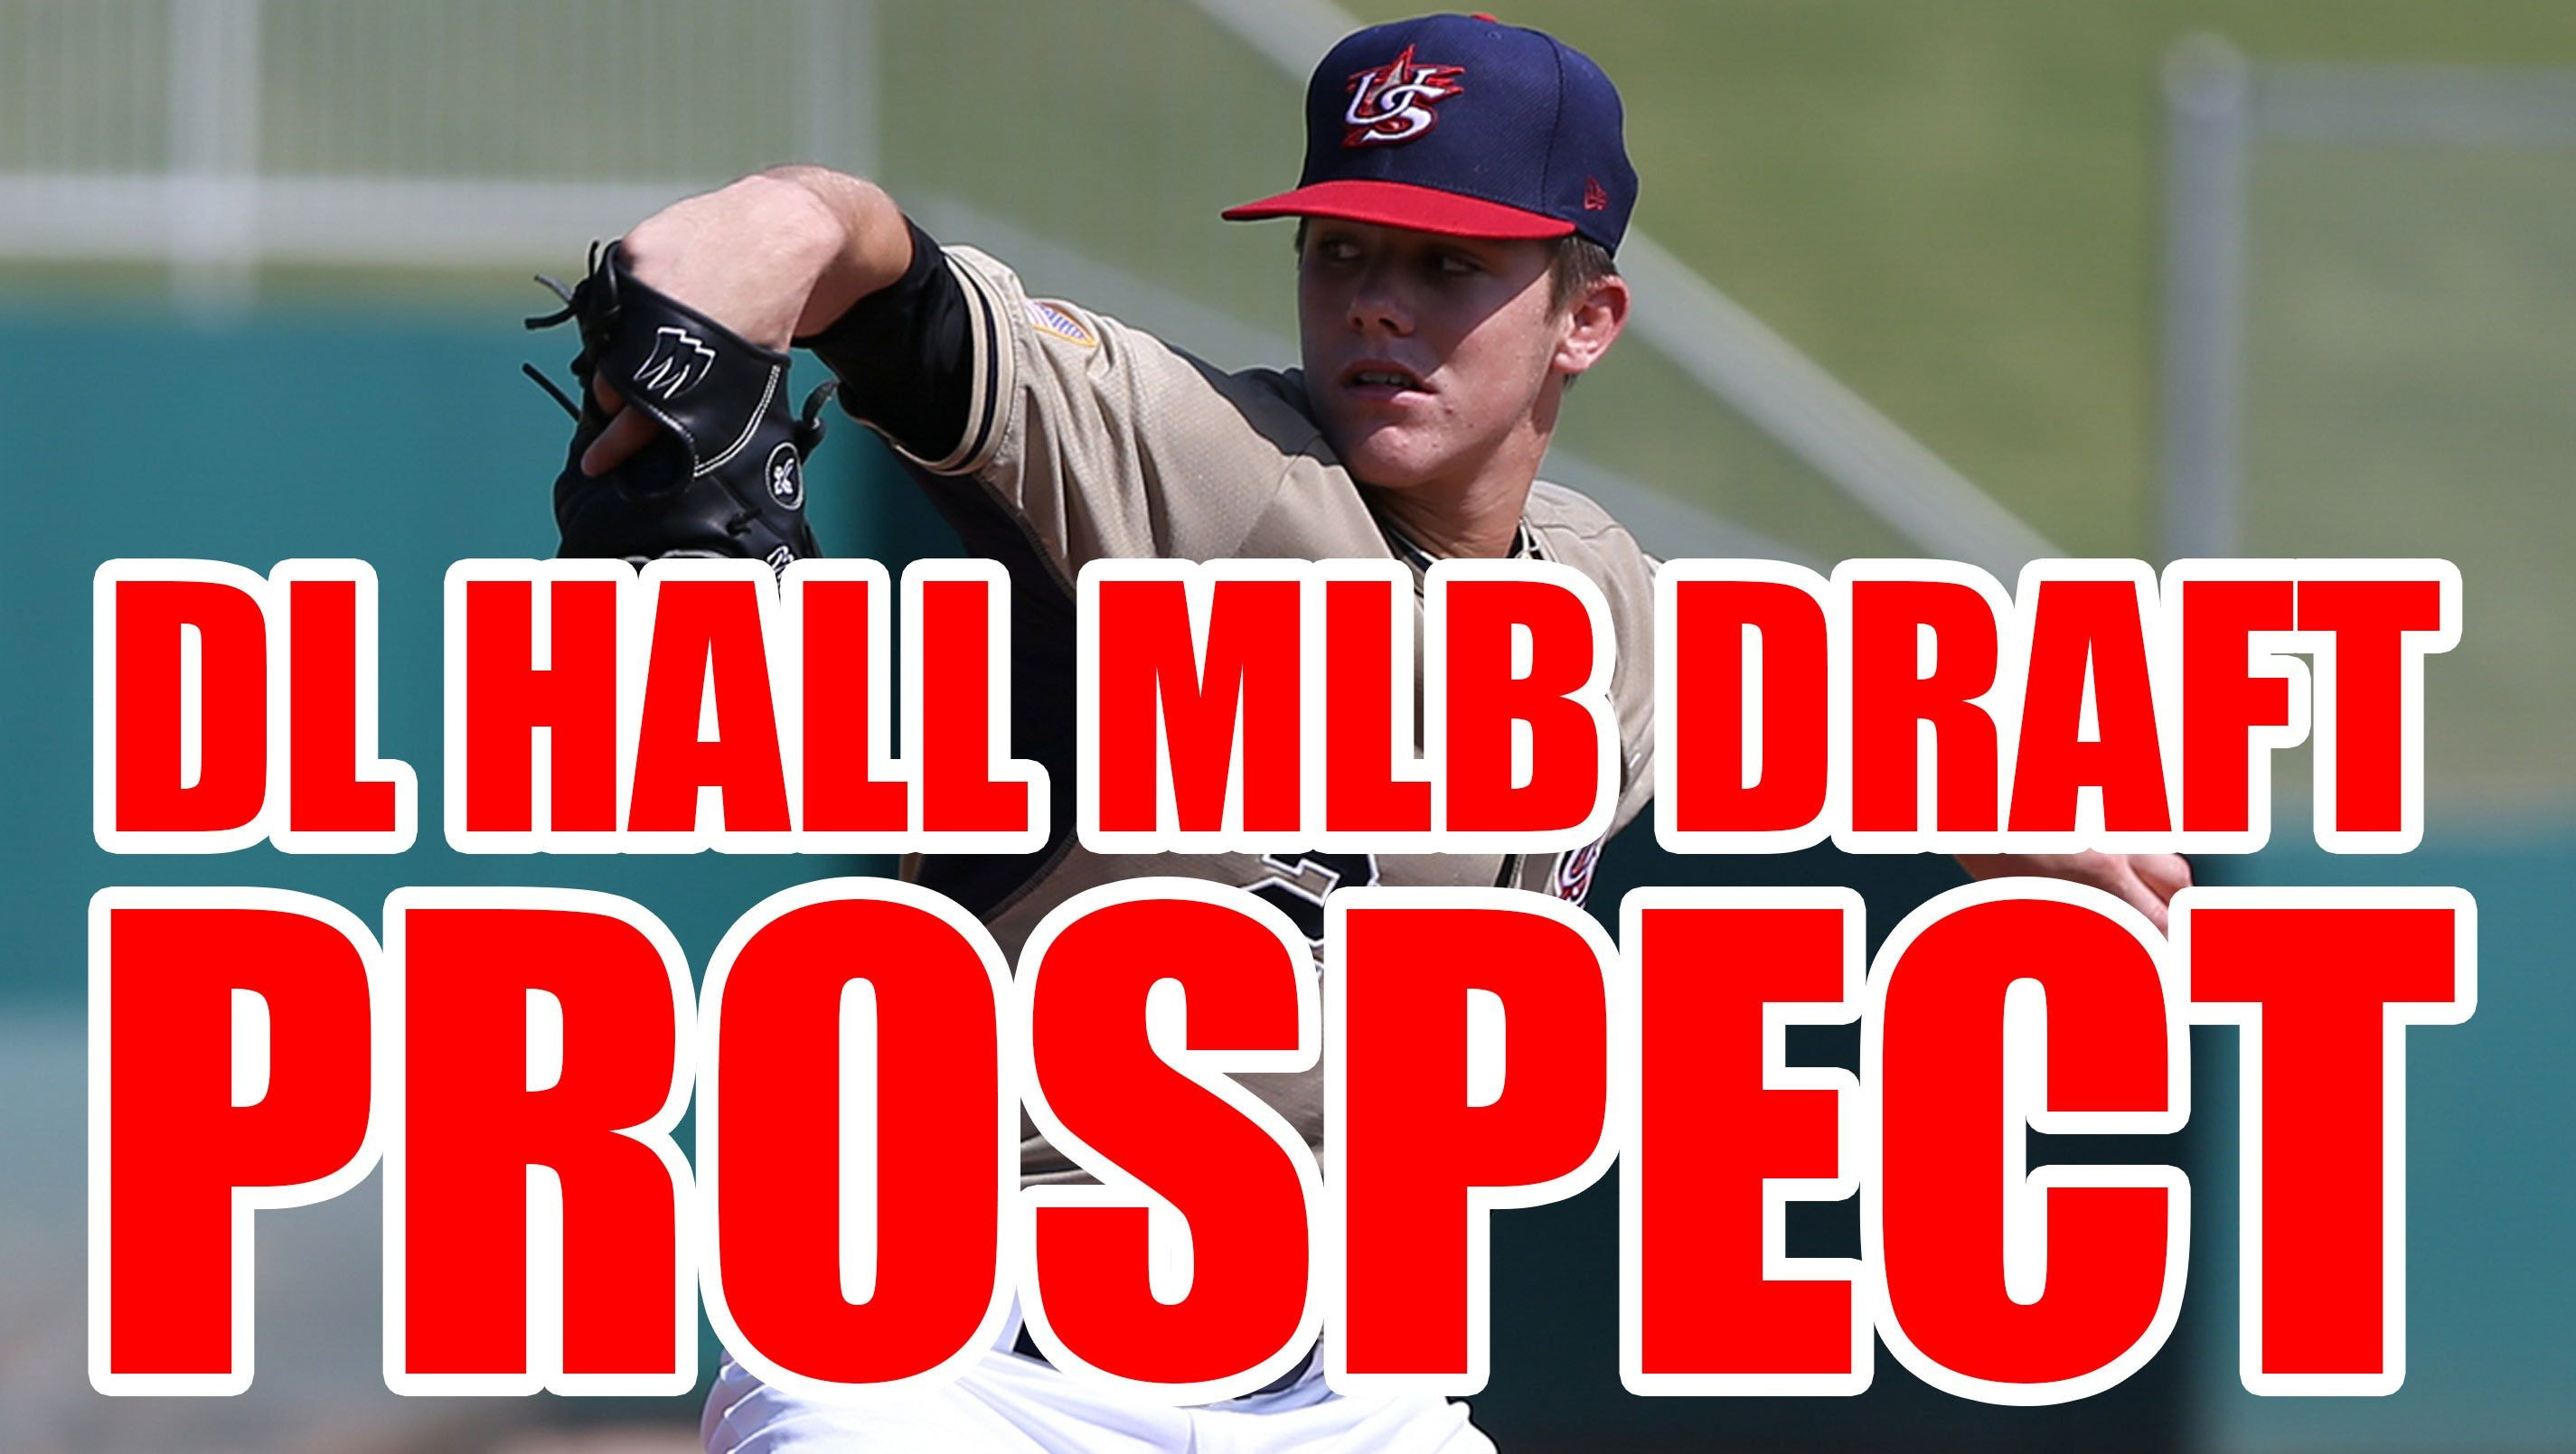 Baseball Pitching Charts Impressive Dl Hall Major League Baseball Draft Projections